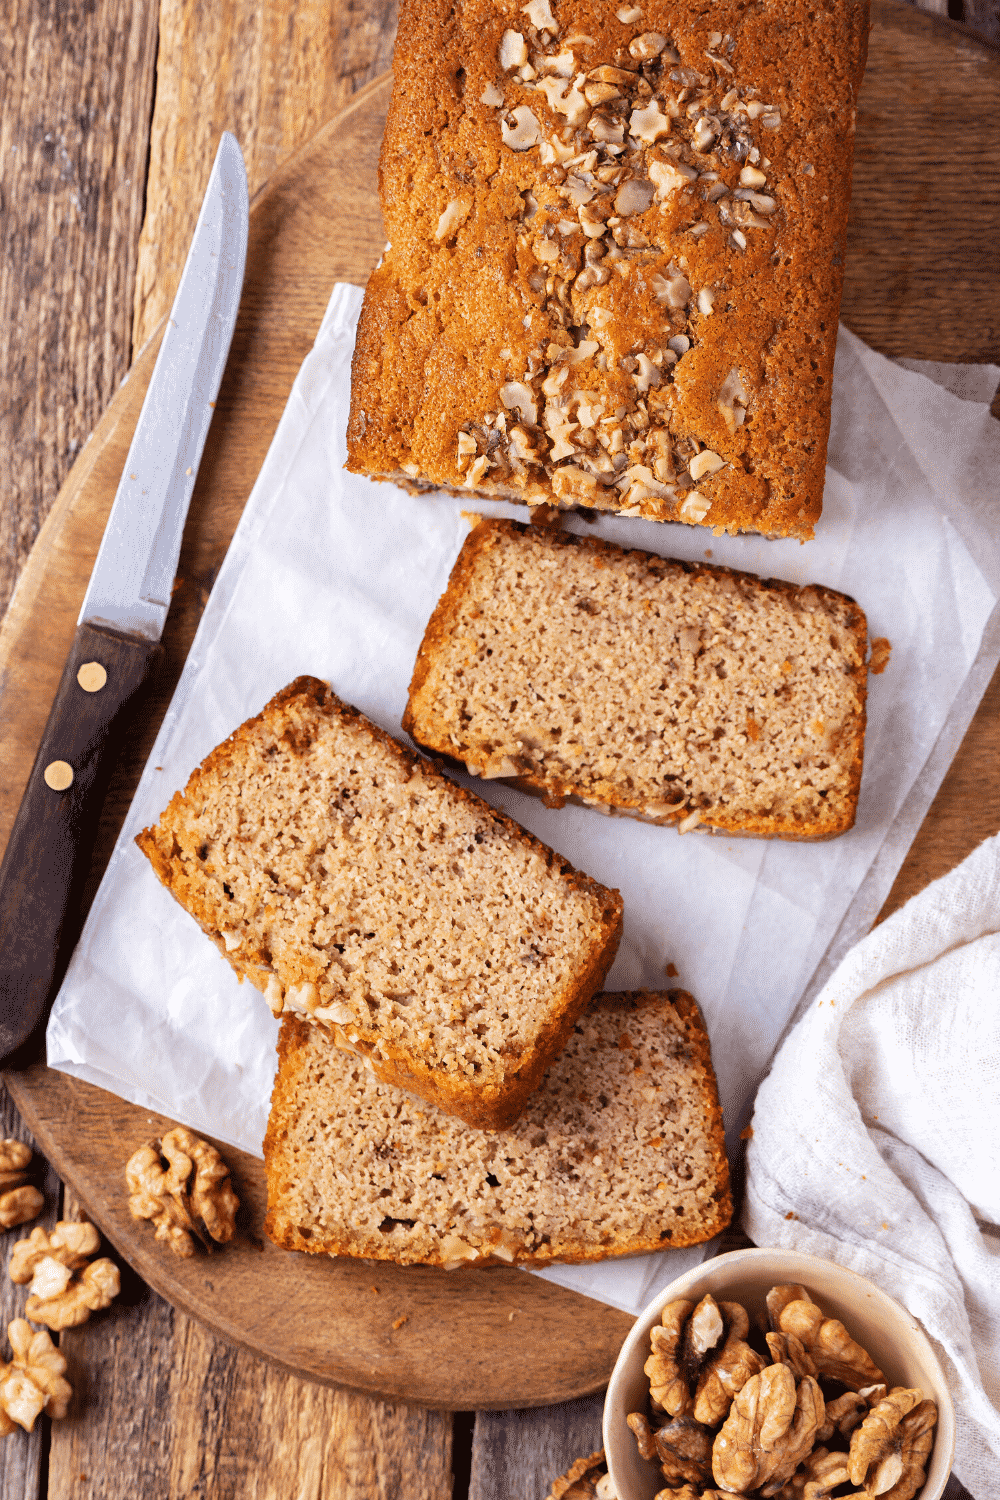 A banana bread loaf on a wooden cutting board with three cut pieces laying in front of the loaf. A knife is to the left of the banana bread and a small bowl of walnuts is in front of it.